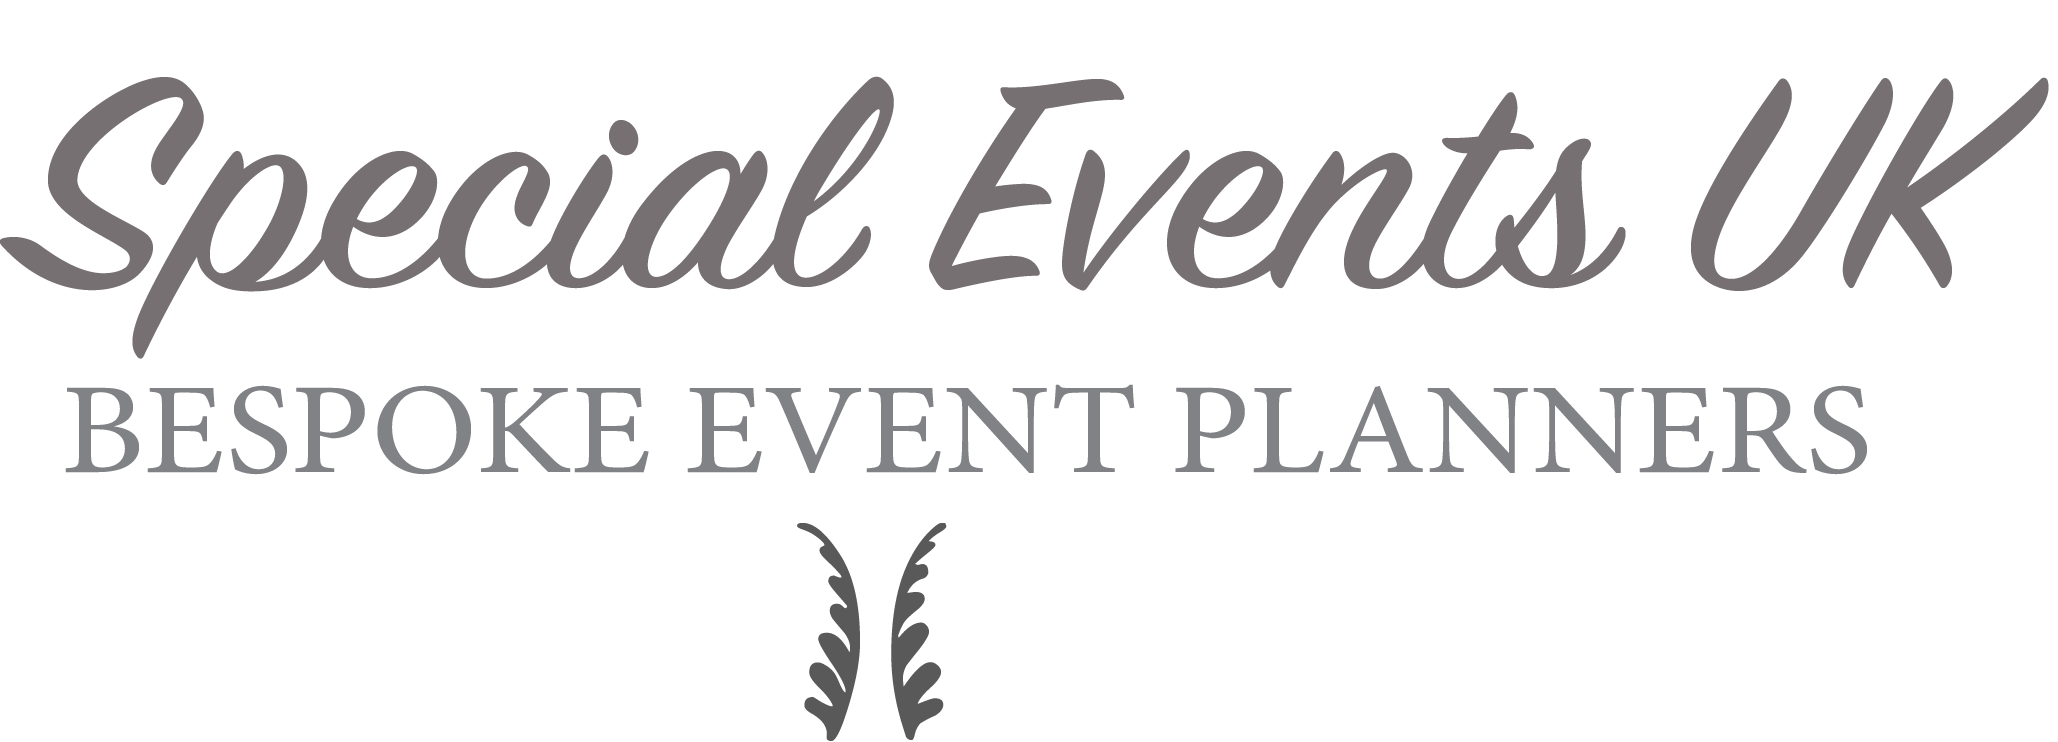 Special Events UK